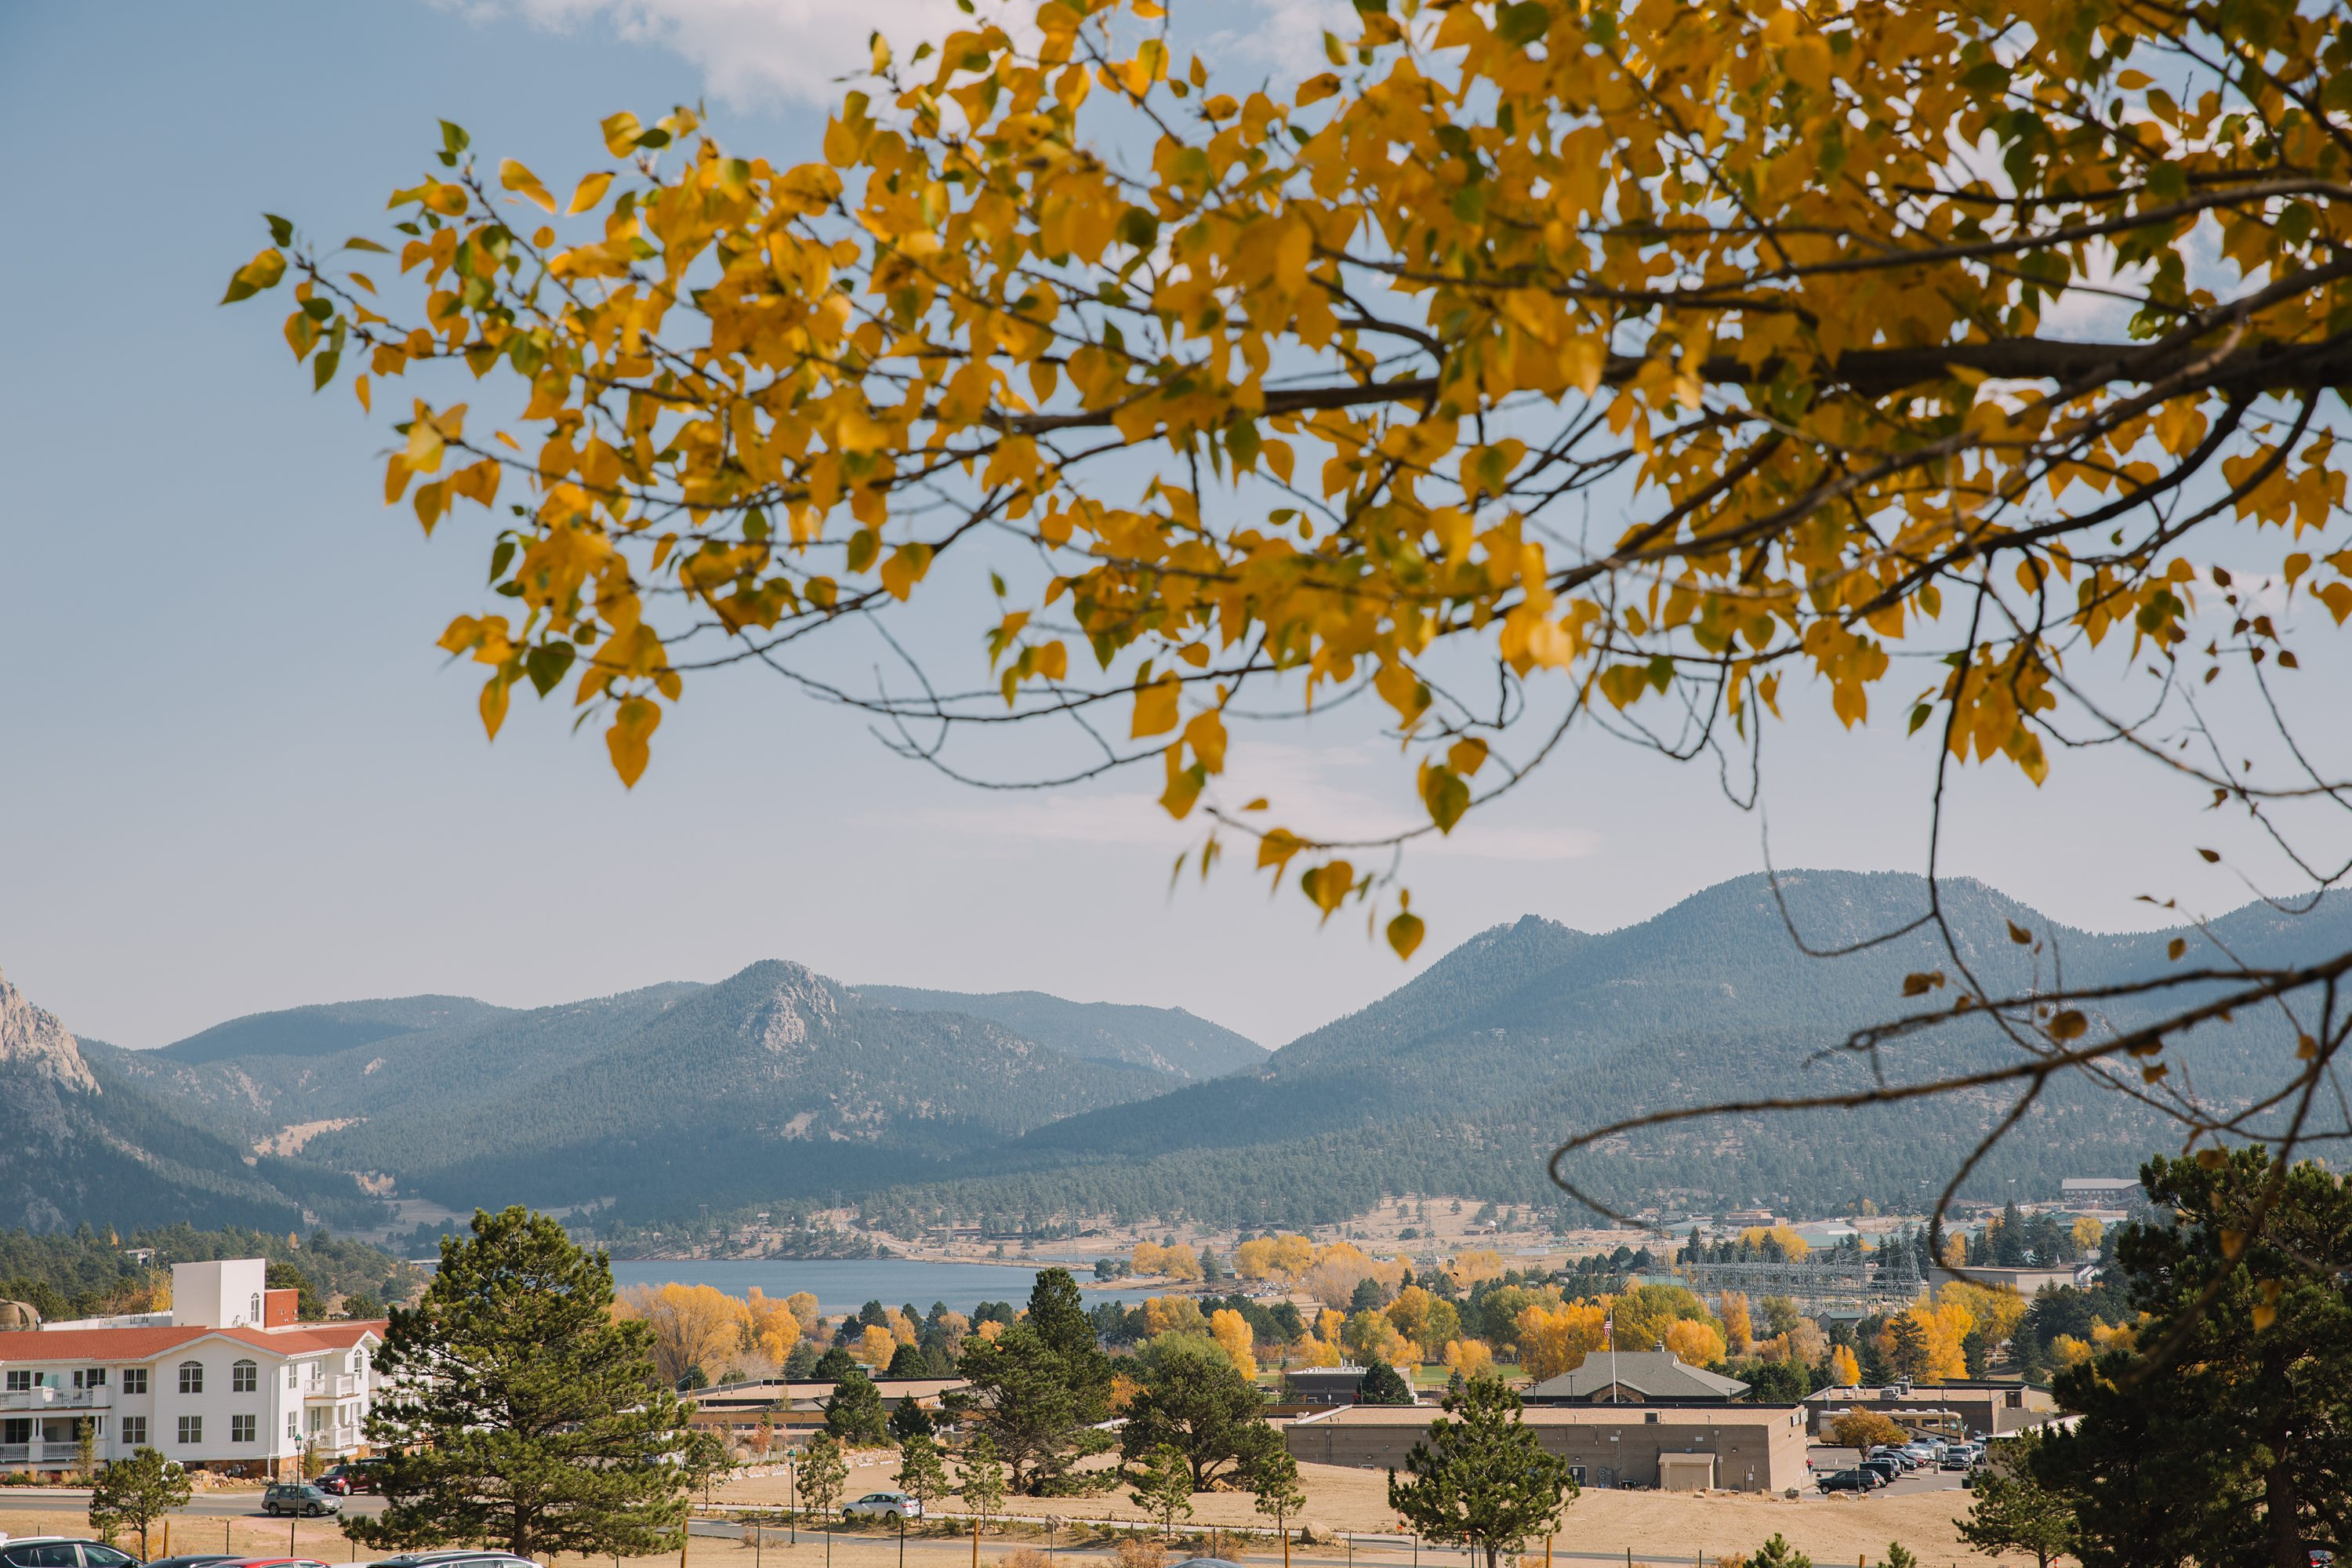 colorado,rocky mountains,yellow leaves